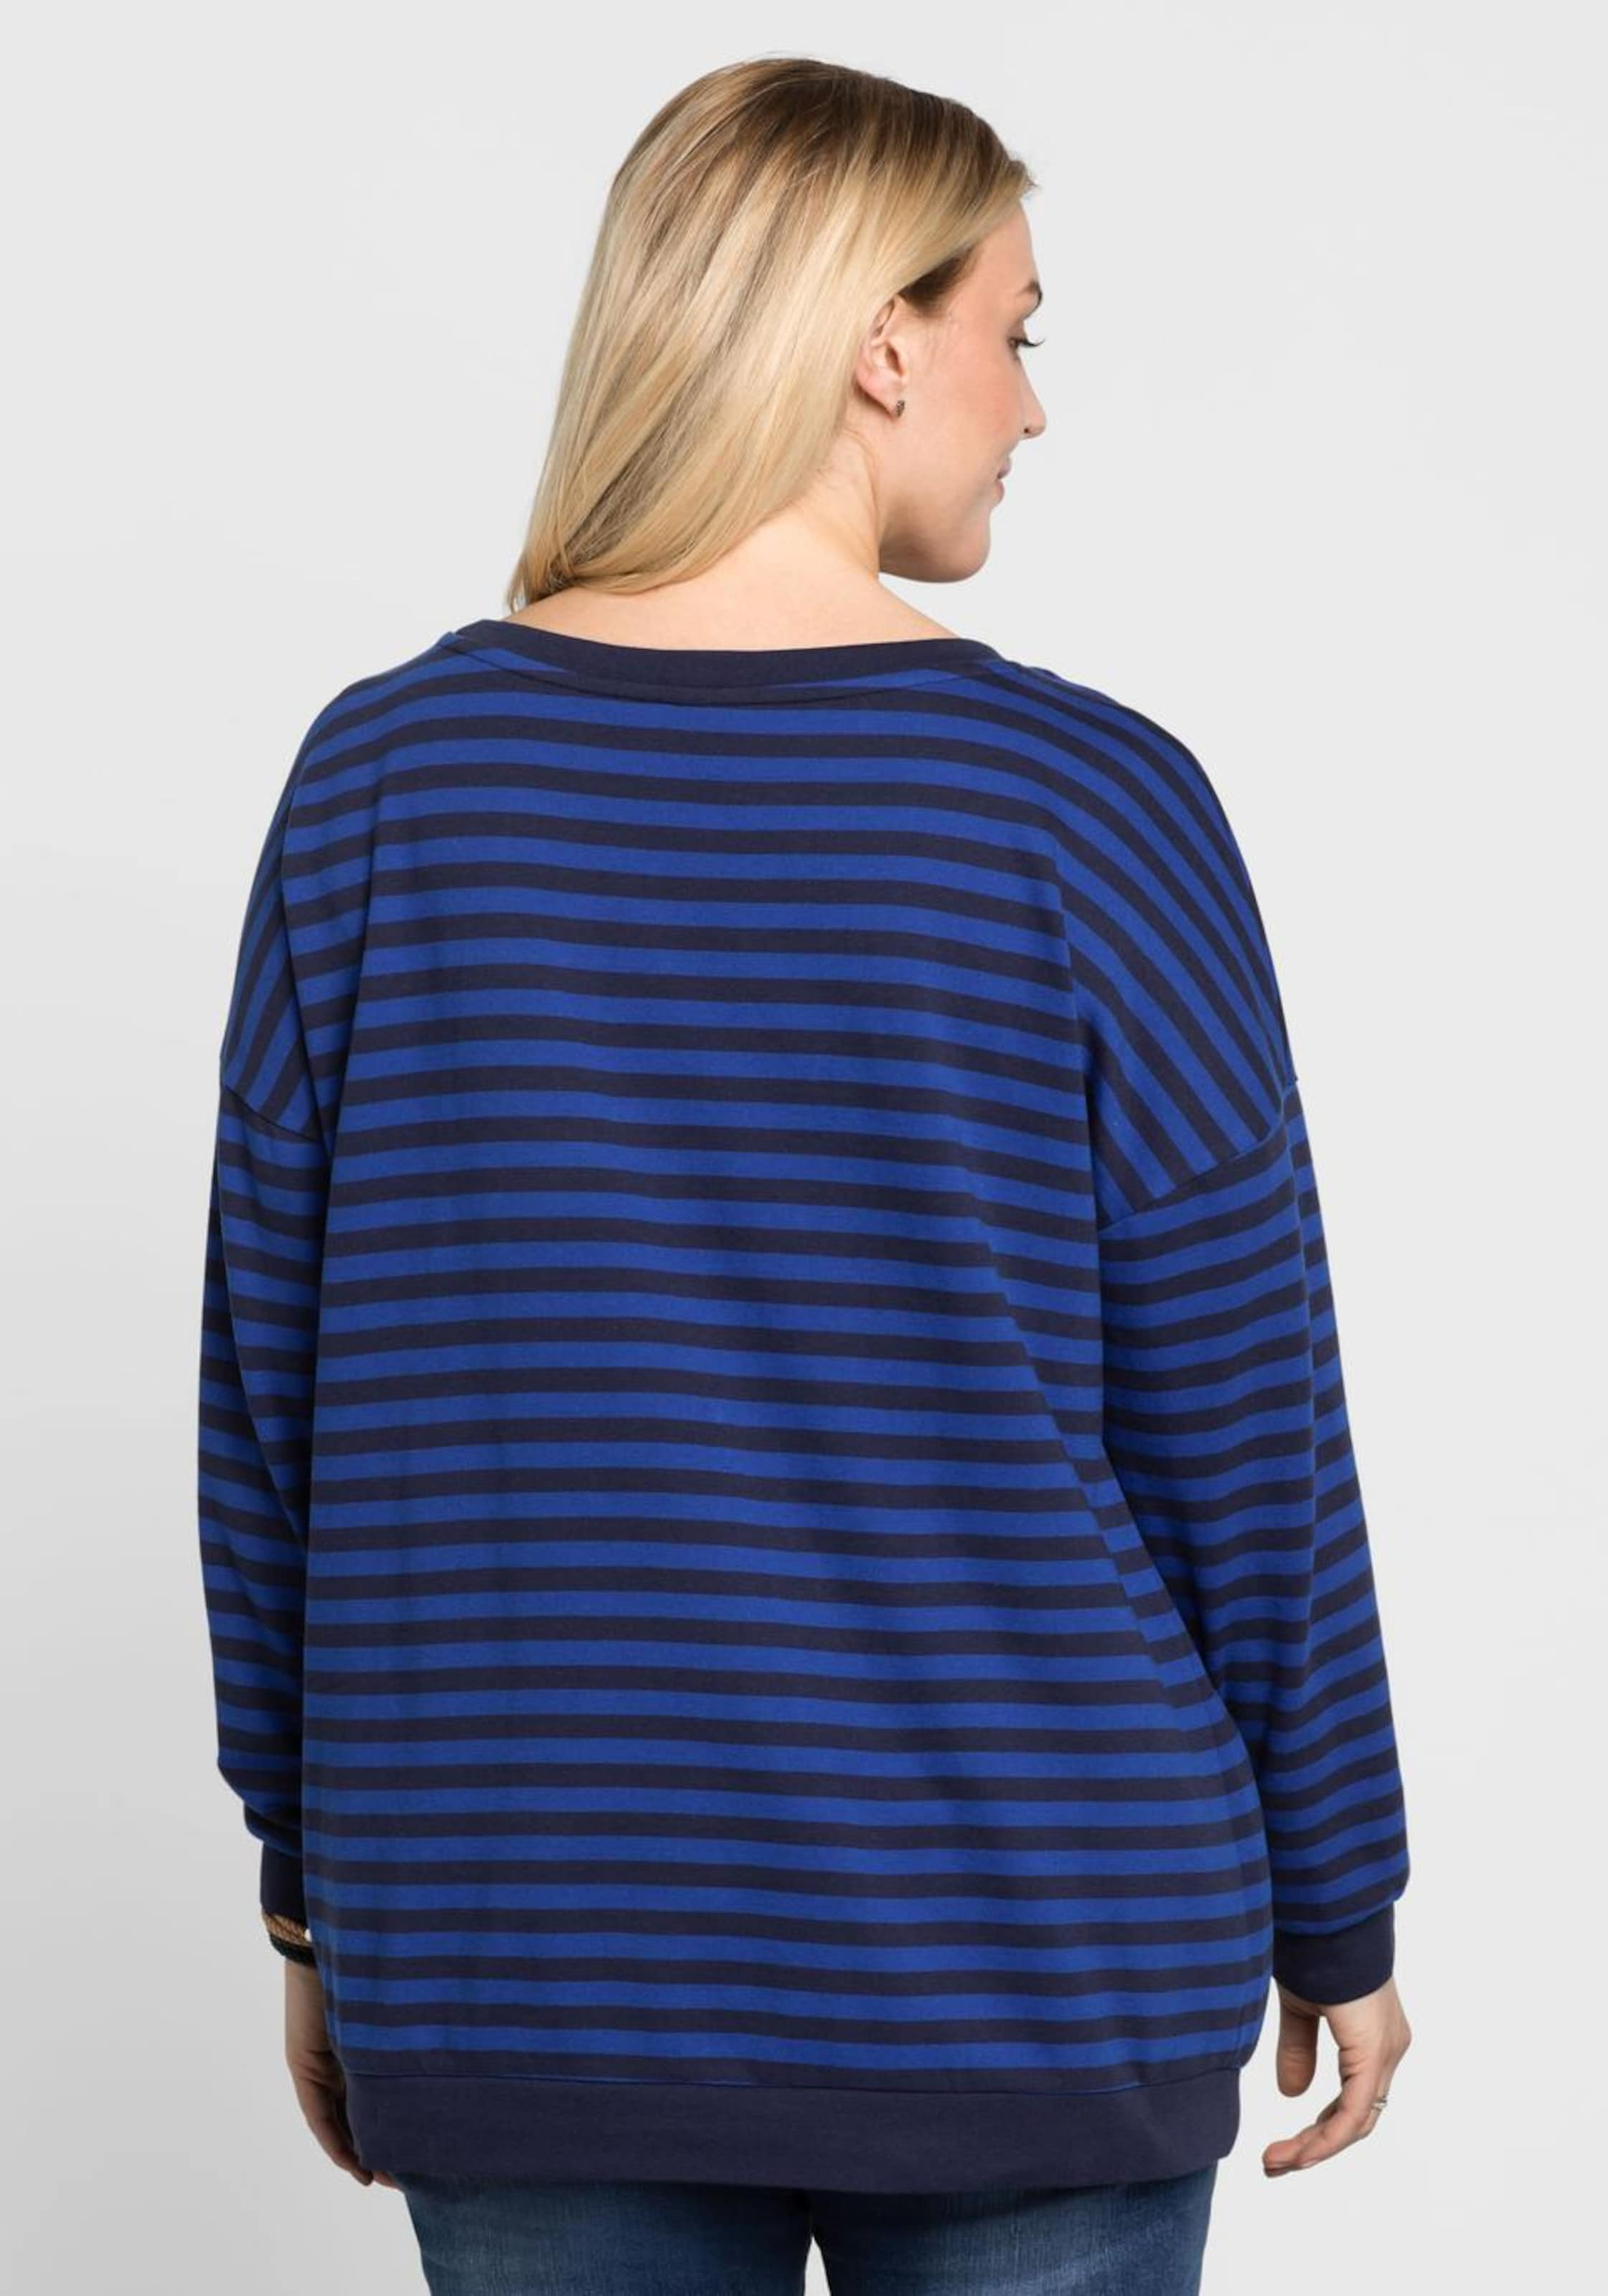 In Sweatshirt Sheegotit RoyalblauSchwarz Sheegotit In Sweatshirt RoyalblauSchwarz qSMpUVz